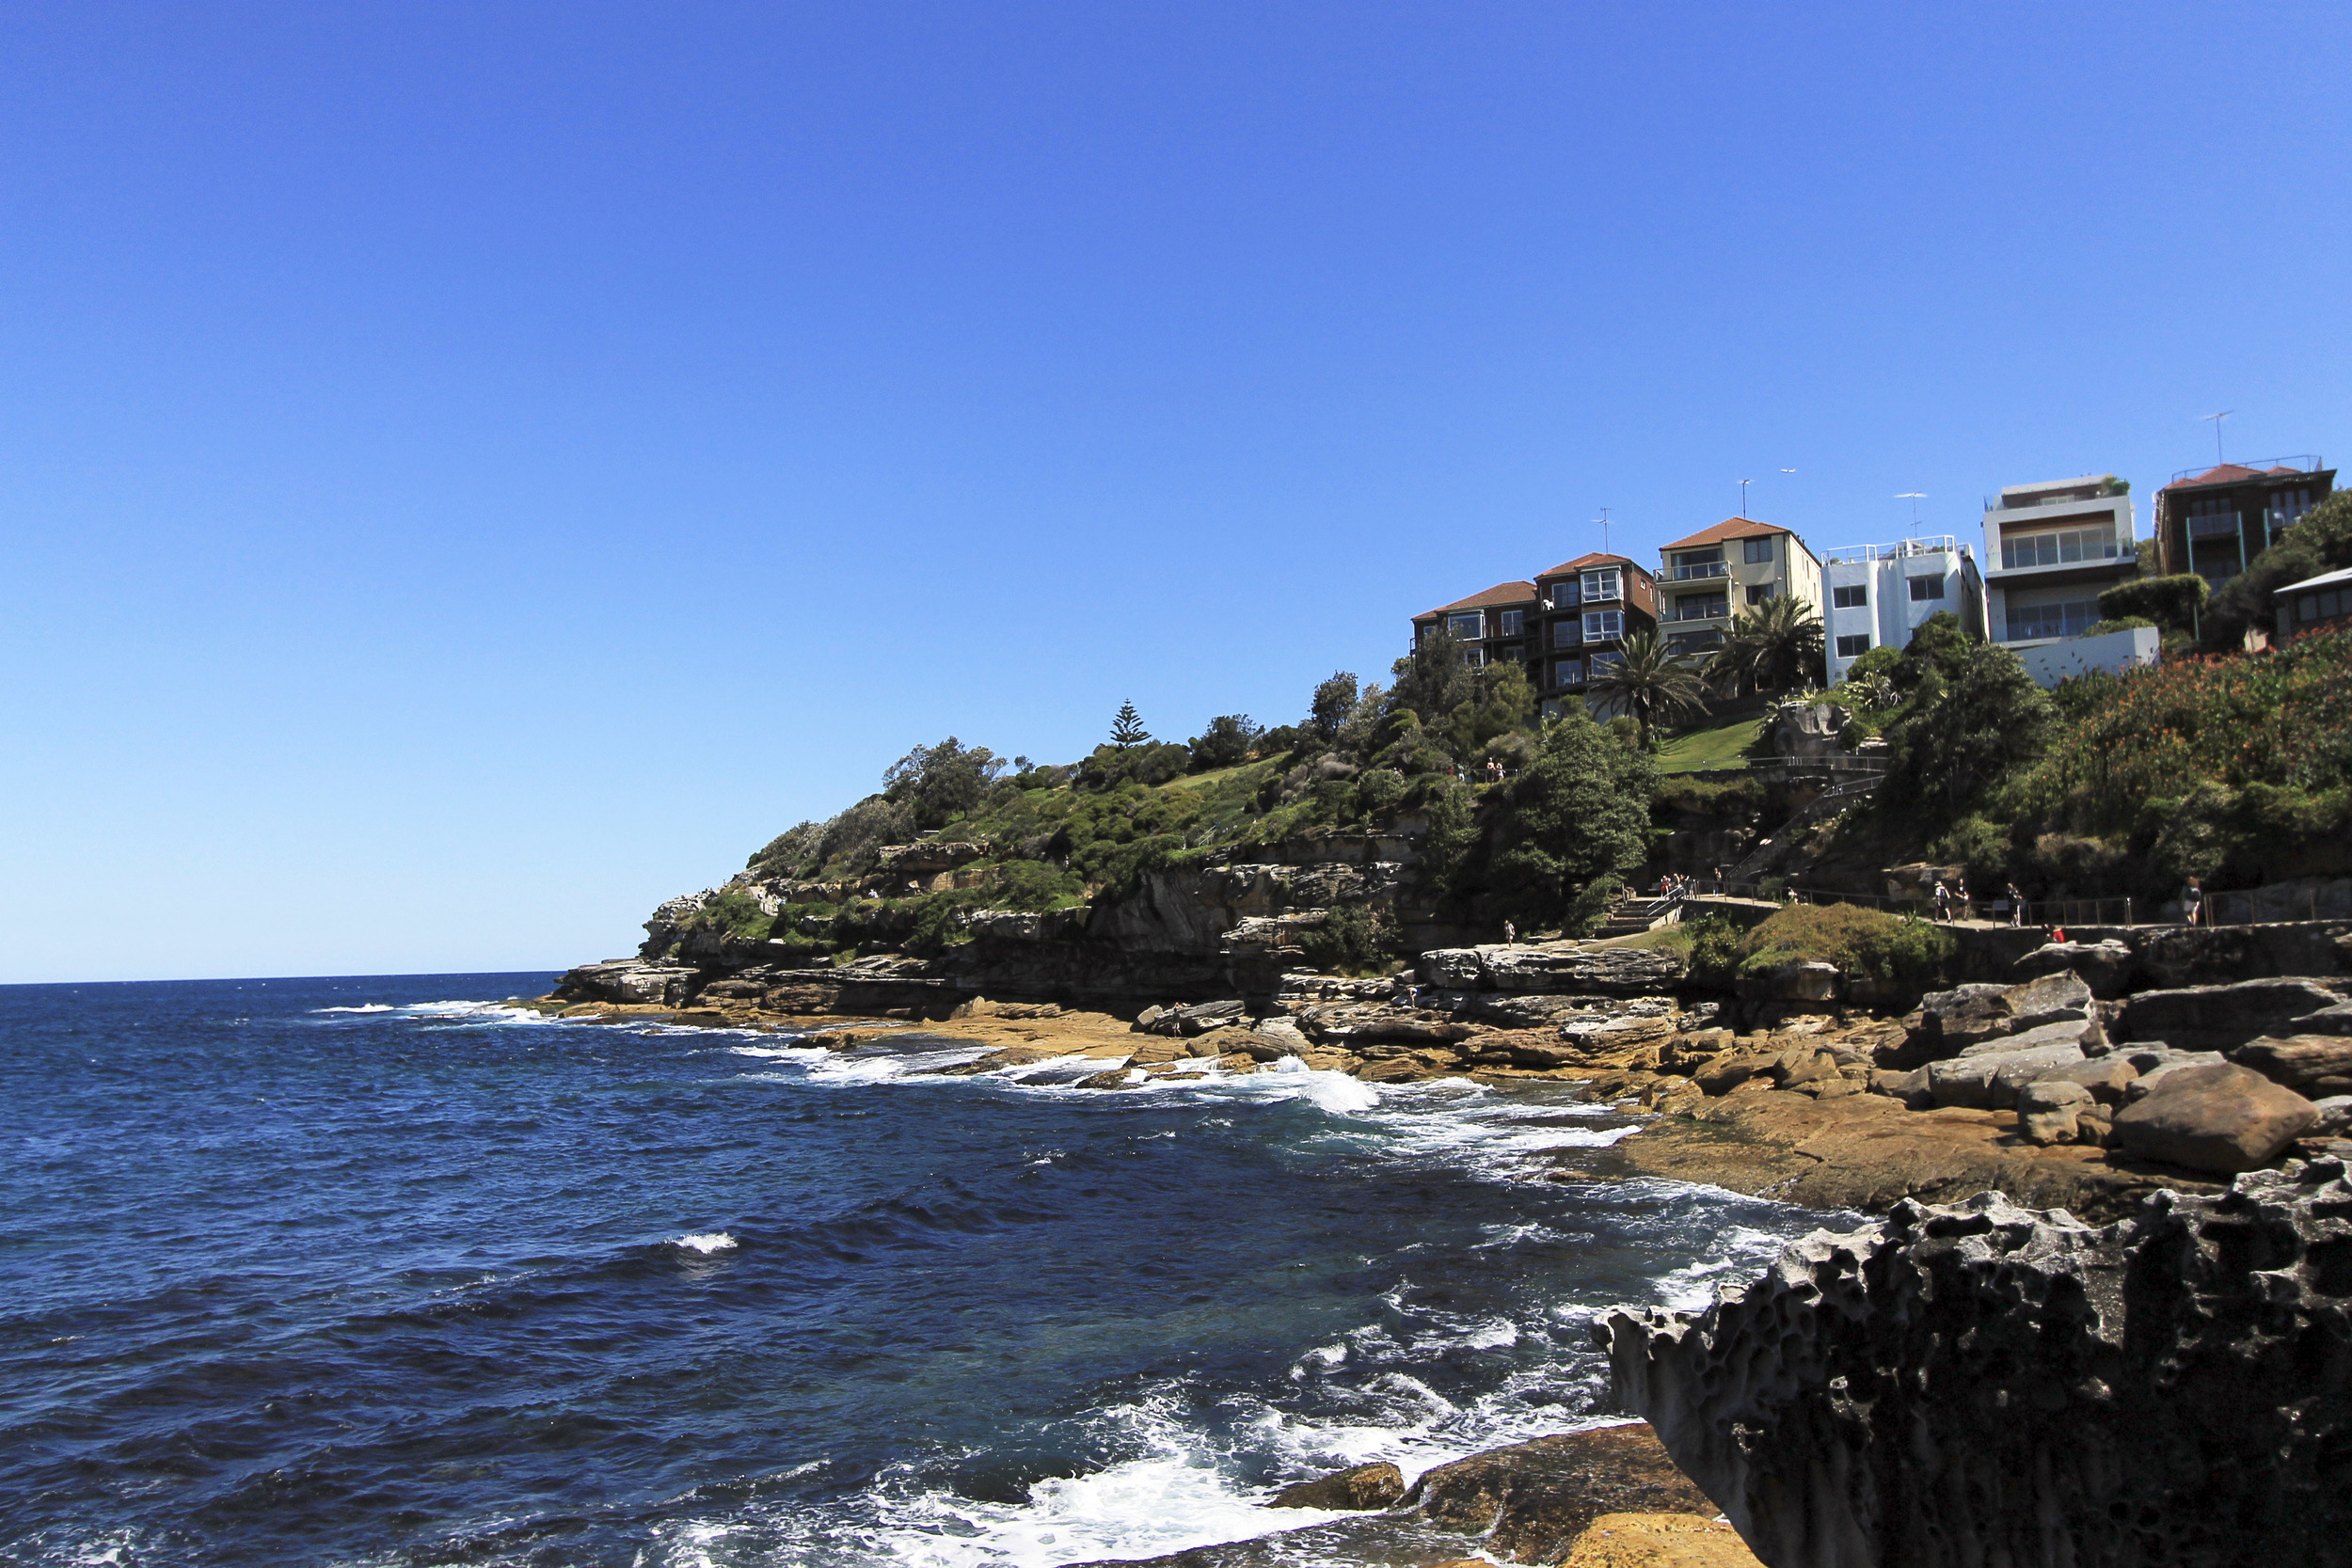 bondi to coogee coastal walk sydney australia photography.jpg